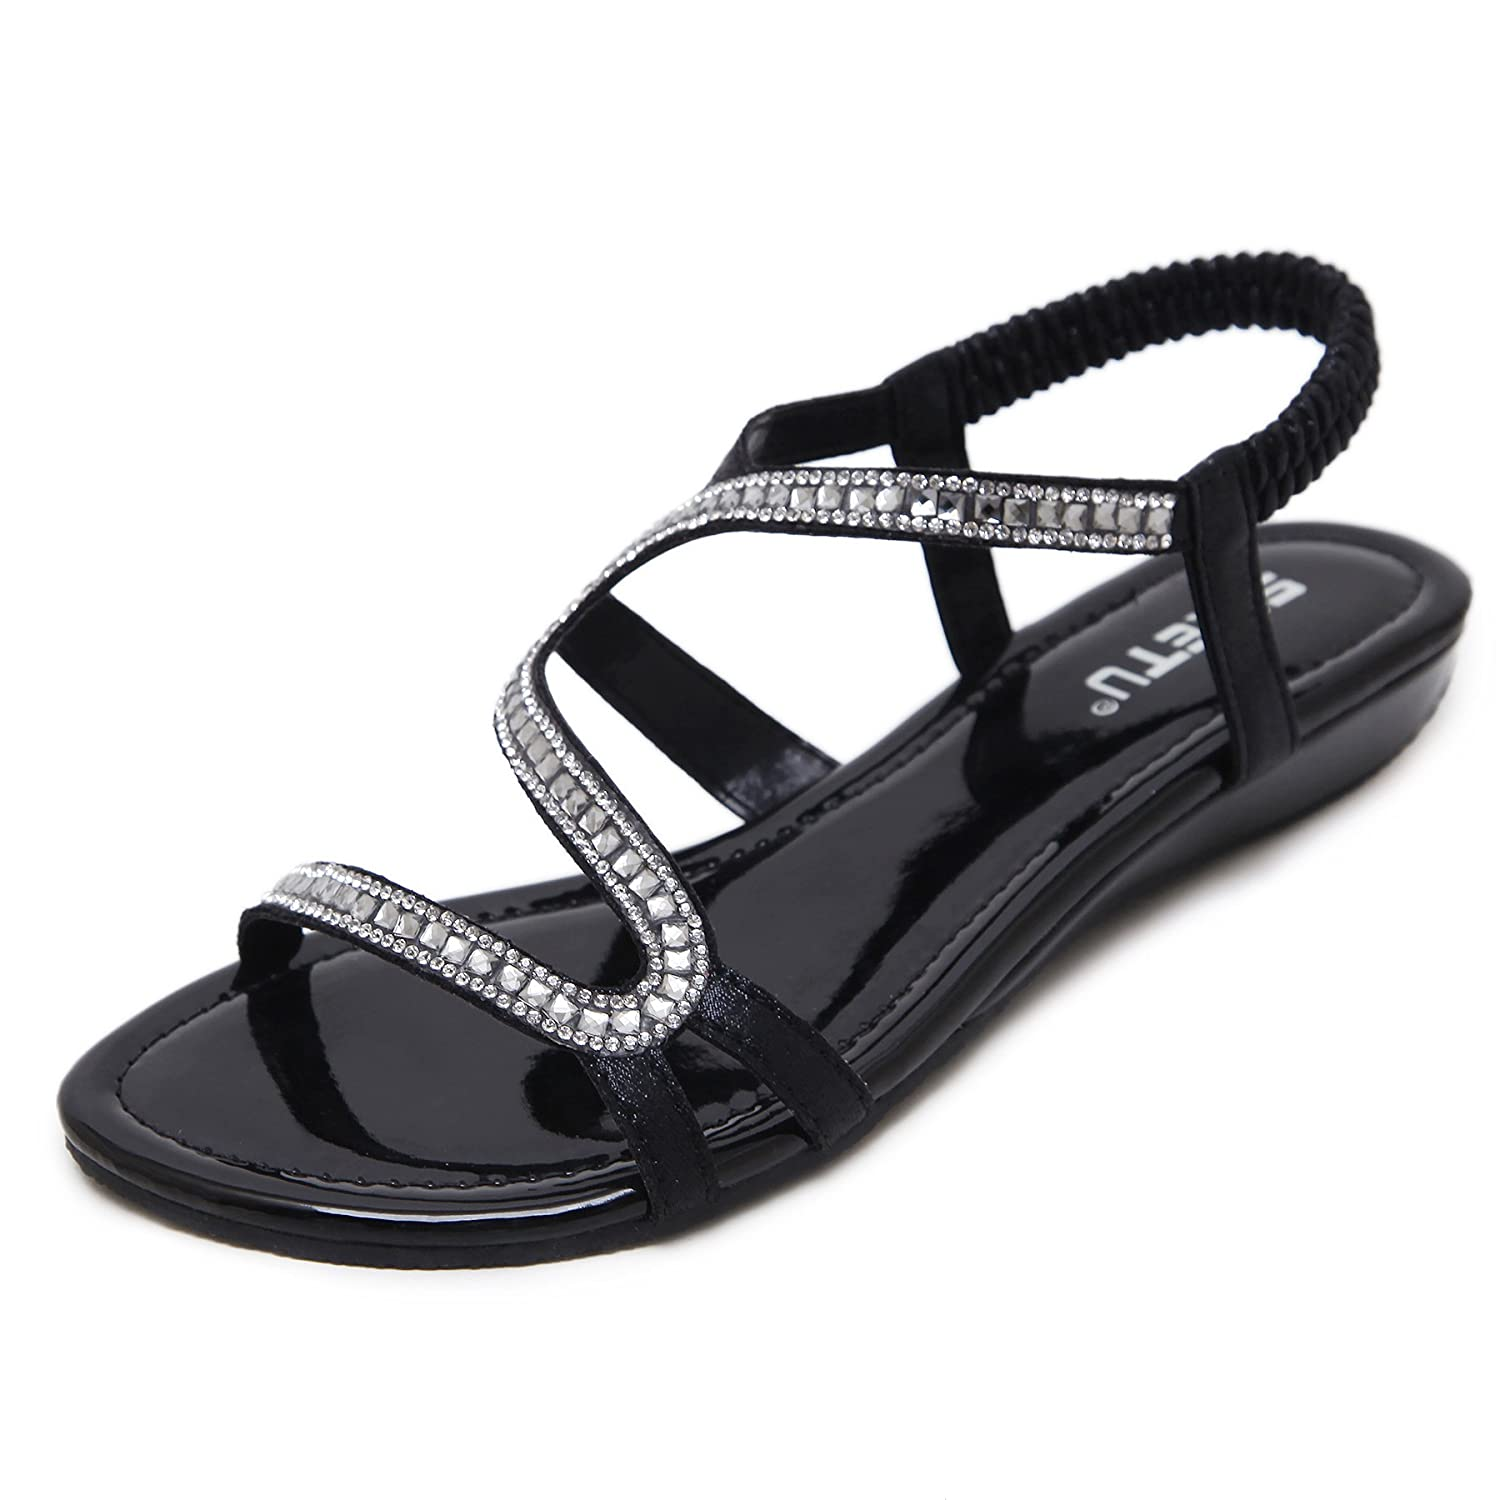 GESDY Women Summer Open Toe Sandals Crystal Rhinestone Low Wedge Strappy Beach Slippers Shoes Party Evening B07CK7D1ZR 10 B(M) US|Black